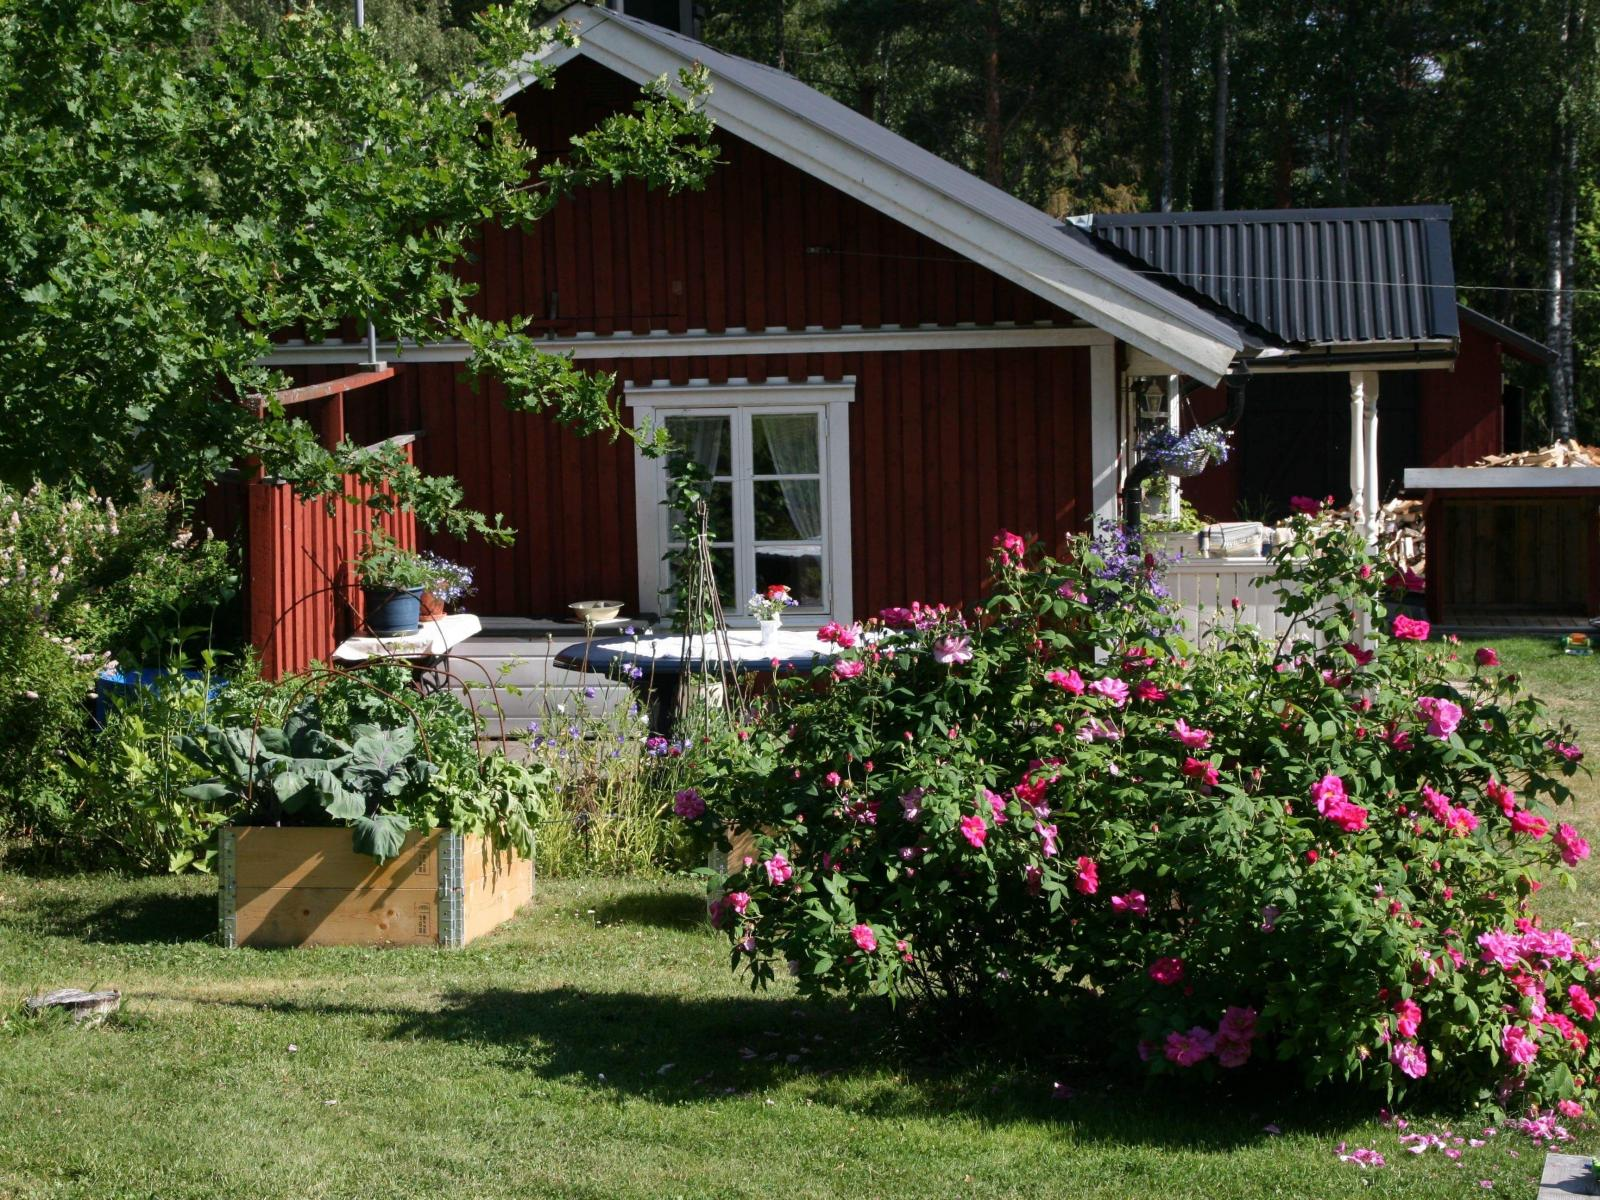 The best available hotels & places to stay near Bjästa, Sweden